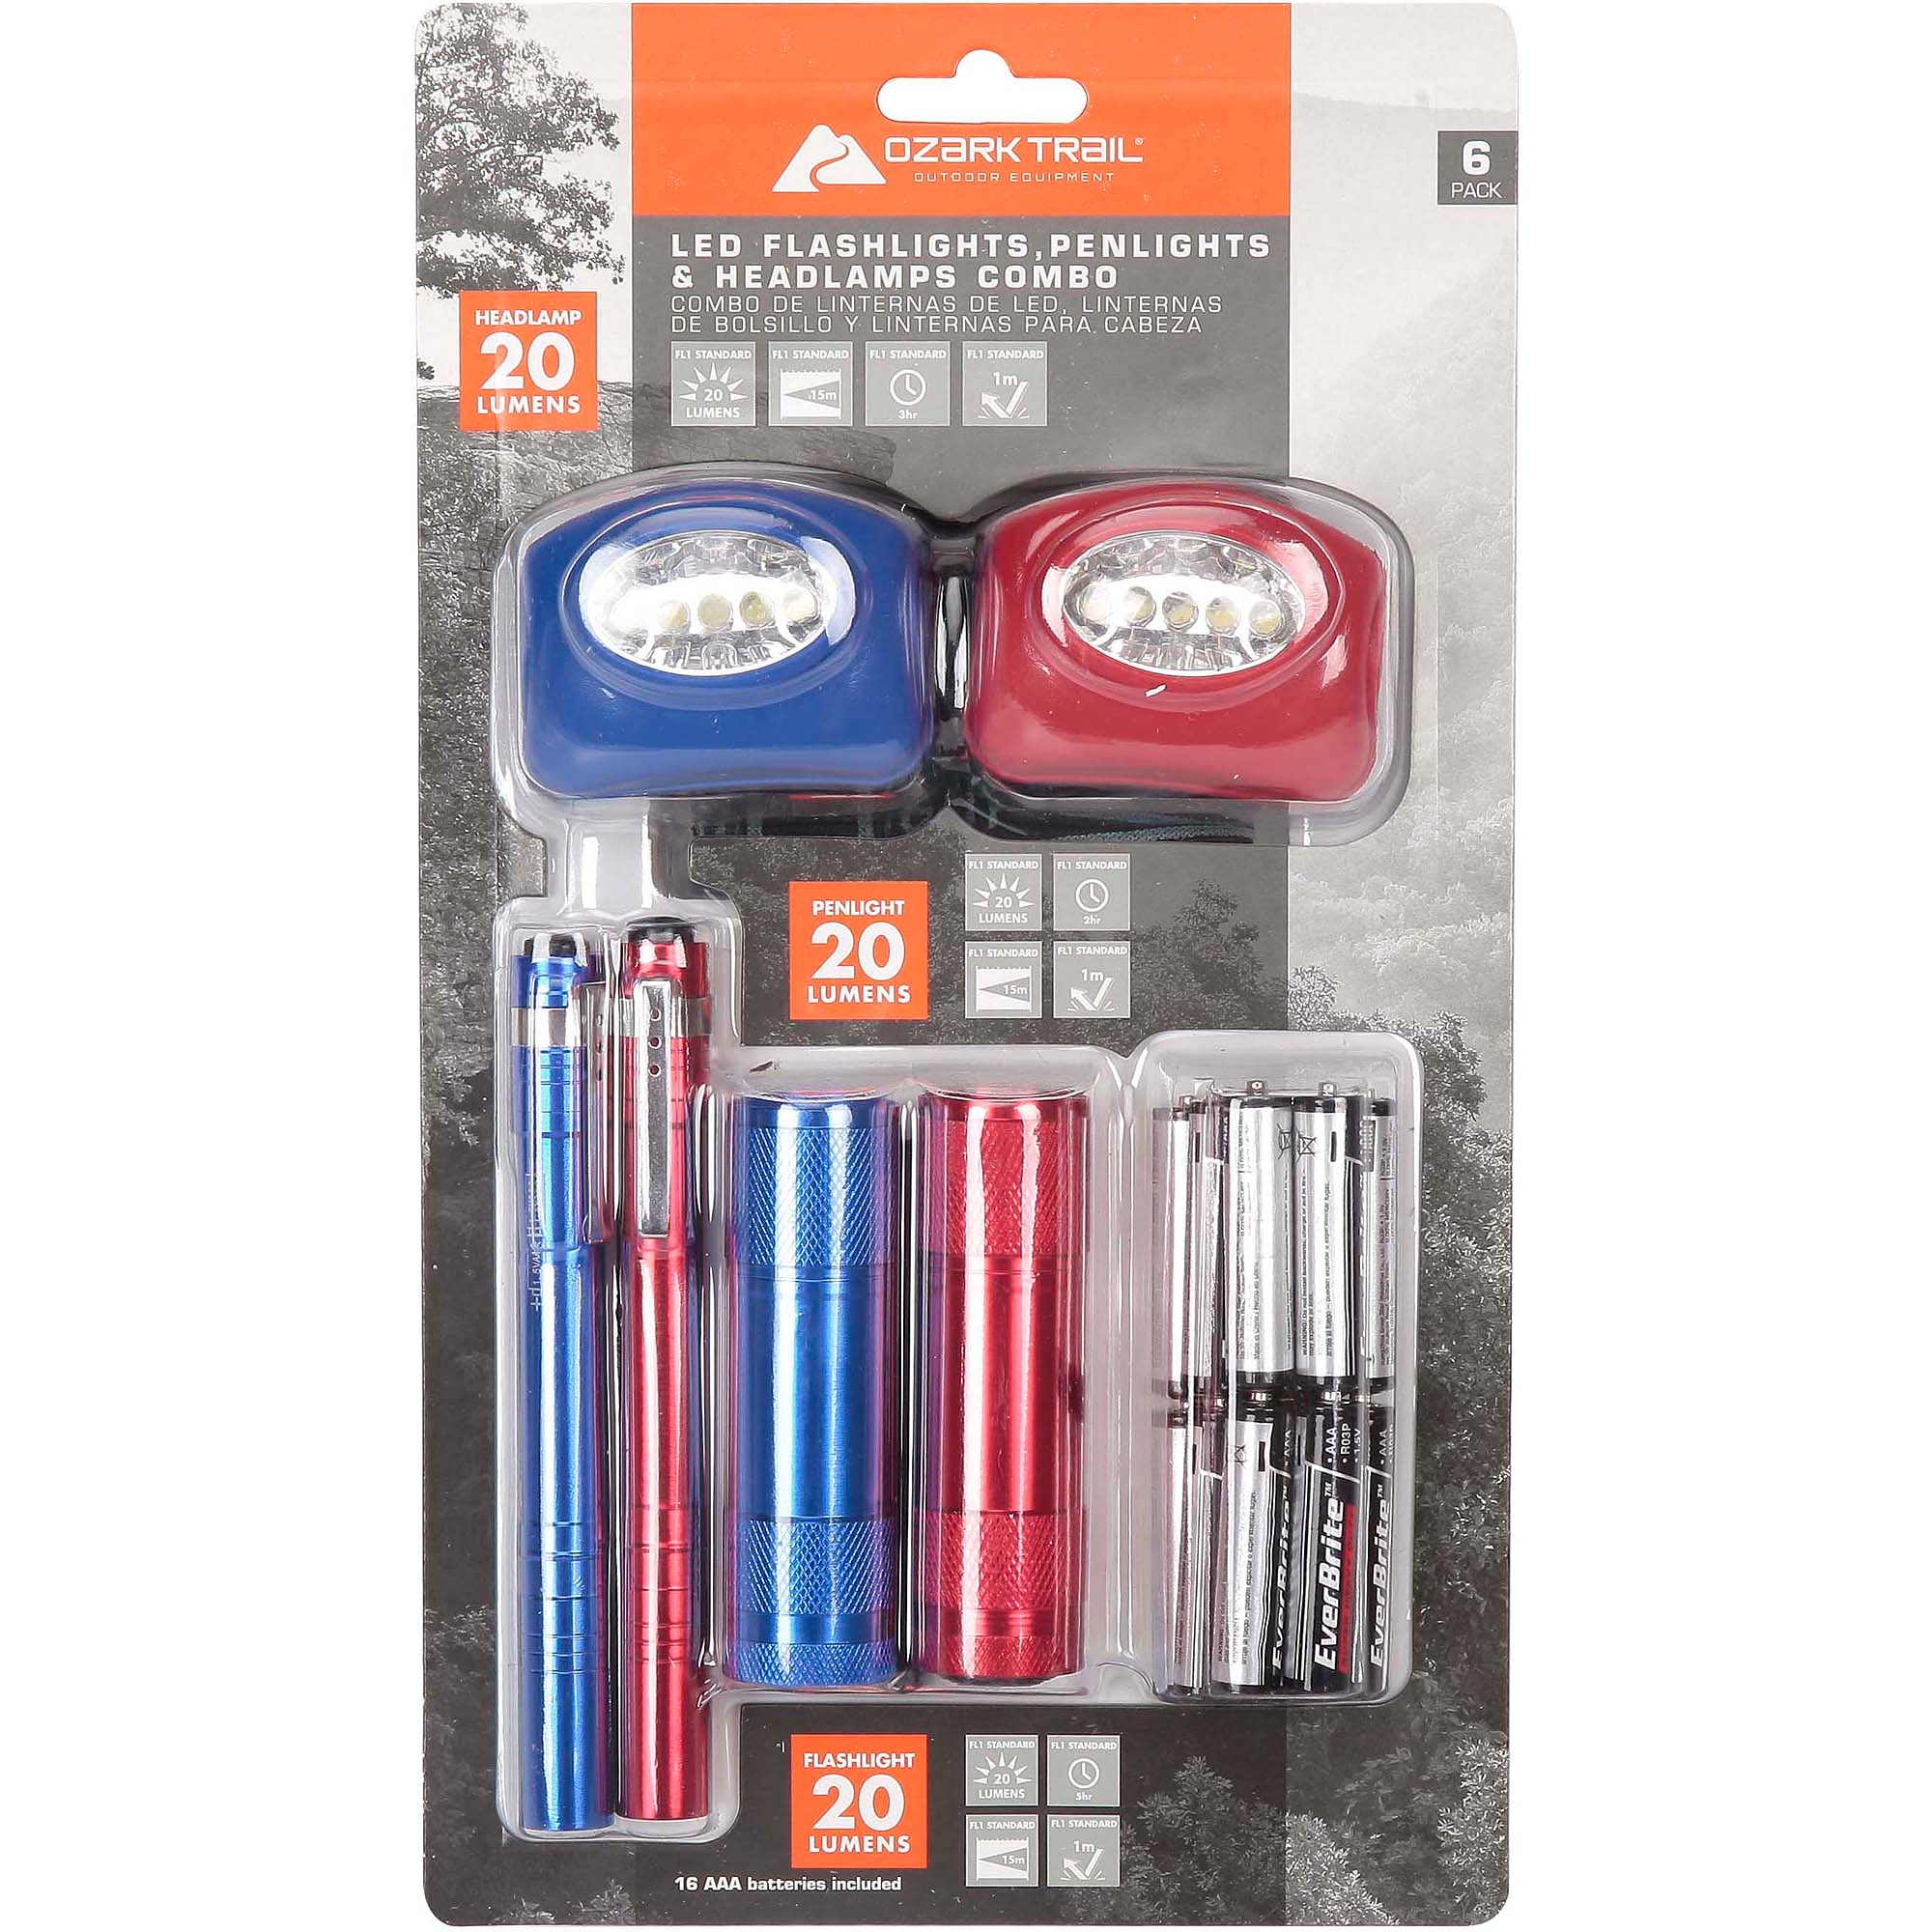 Ozark Trail LED Flashlight and Penlight and Headlamp Combo, 6-Pack